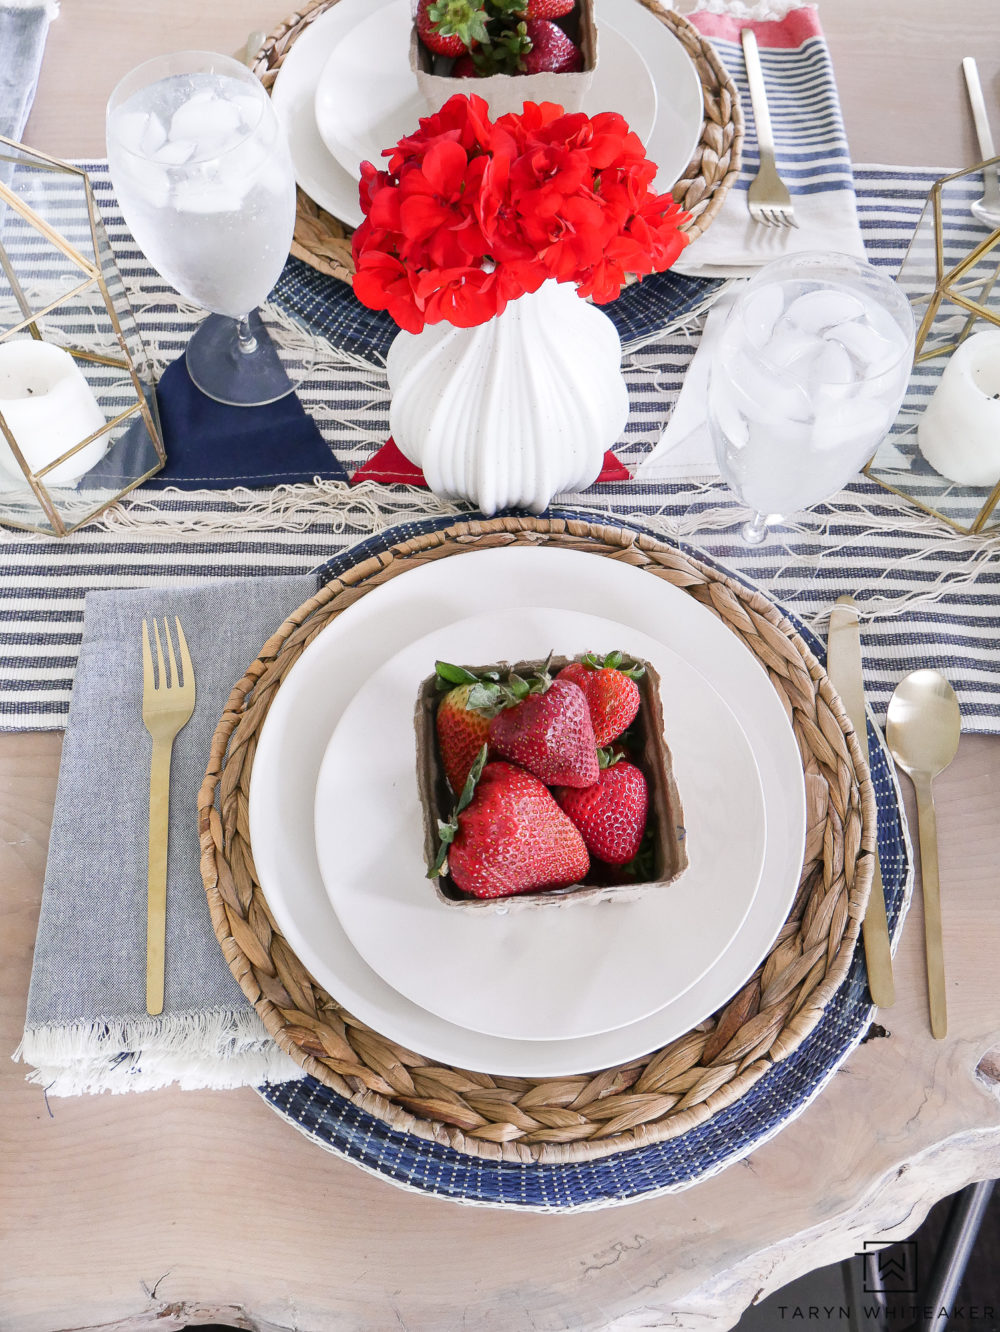 Red, white and blue summer table decor! Love these layered place settings with wicker and navy place mats.